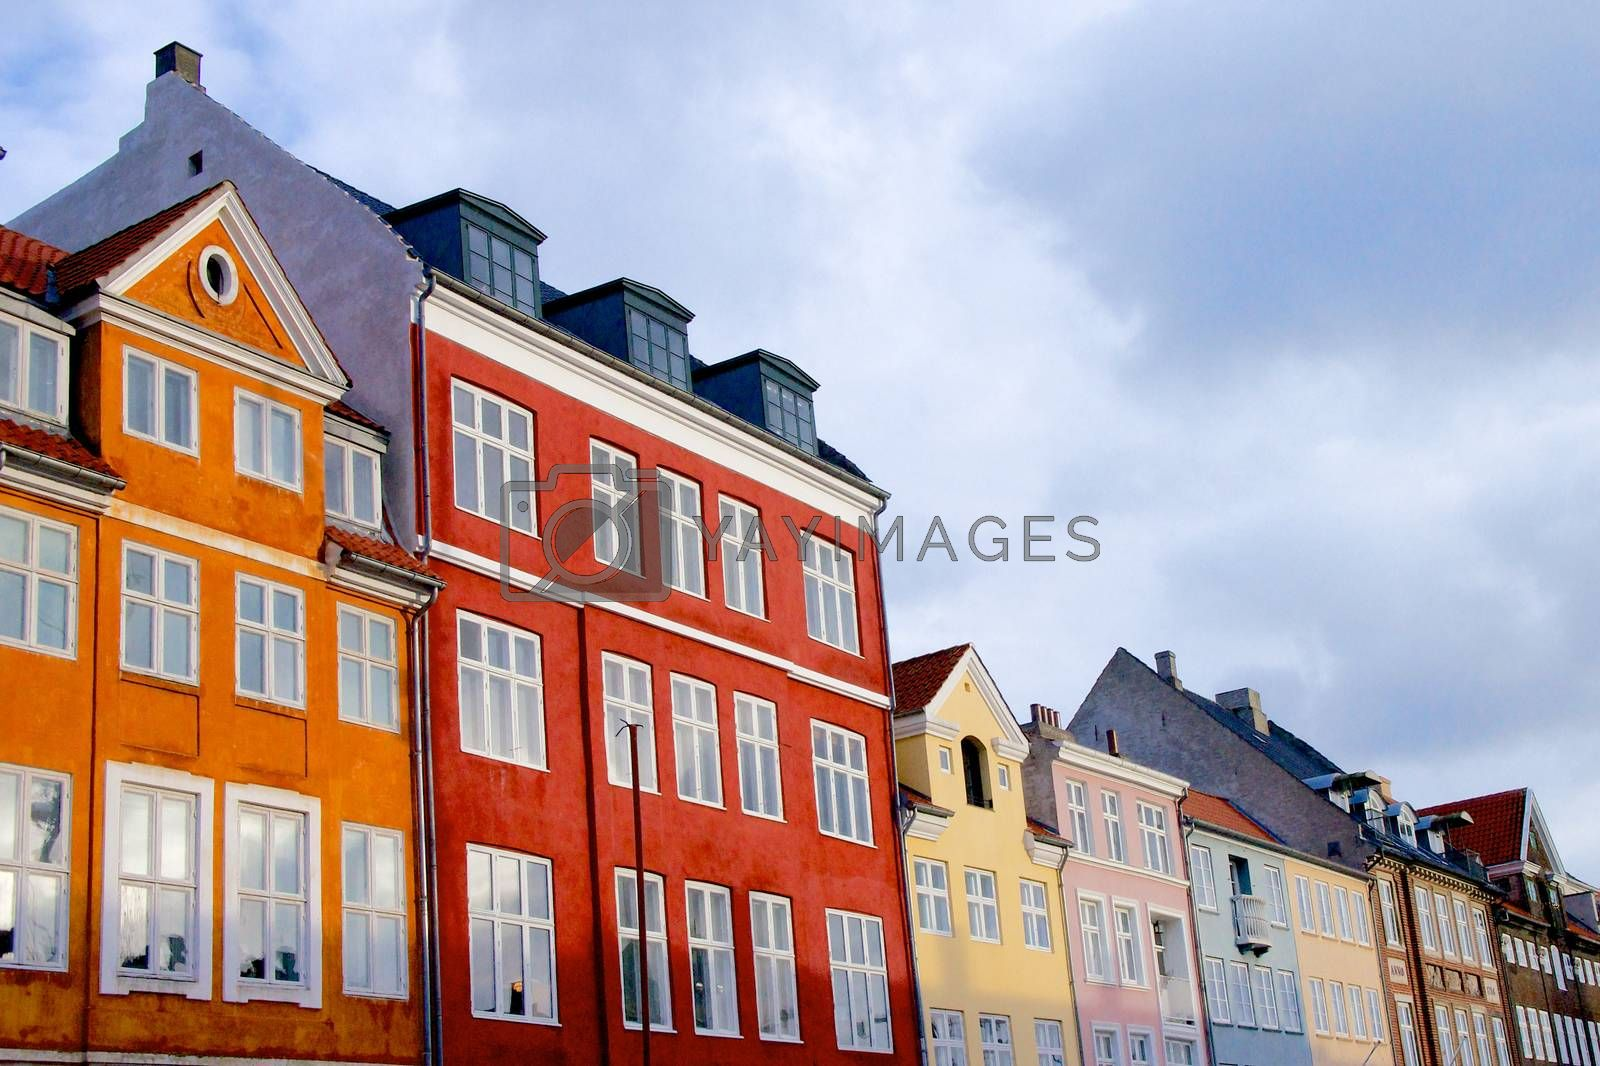 Wall of Colorful Houses with Attic Windows against Blue Sky Outdoors. Copenhagen, Denmark